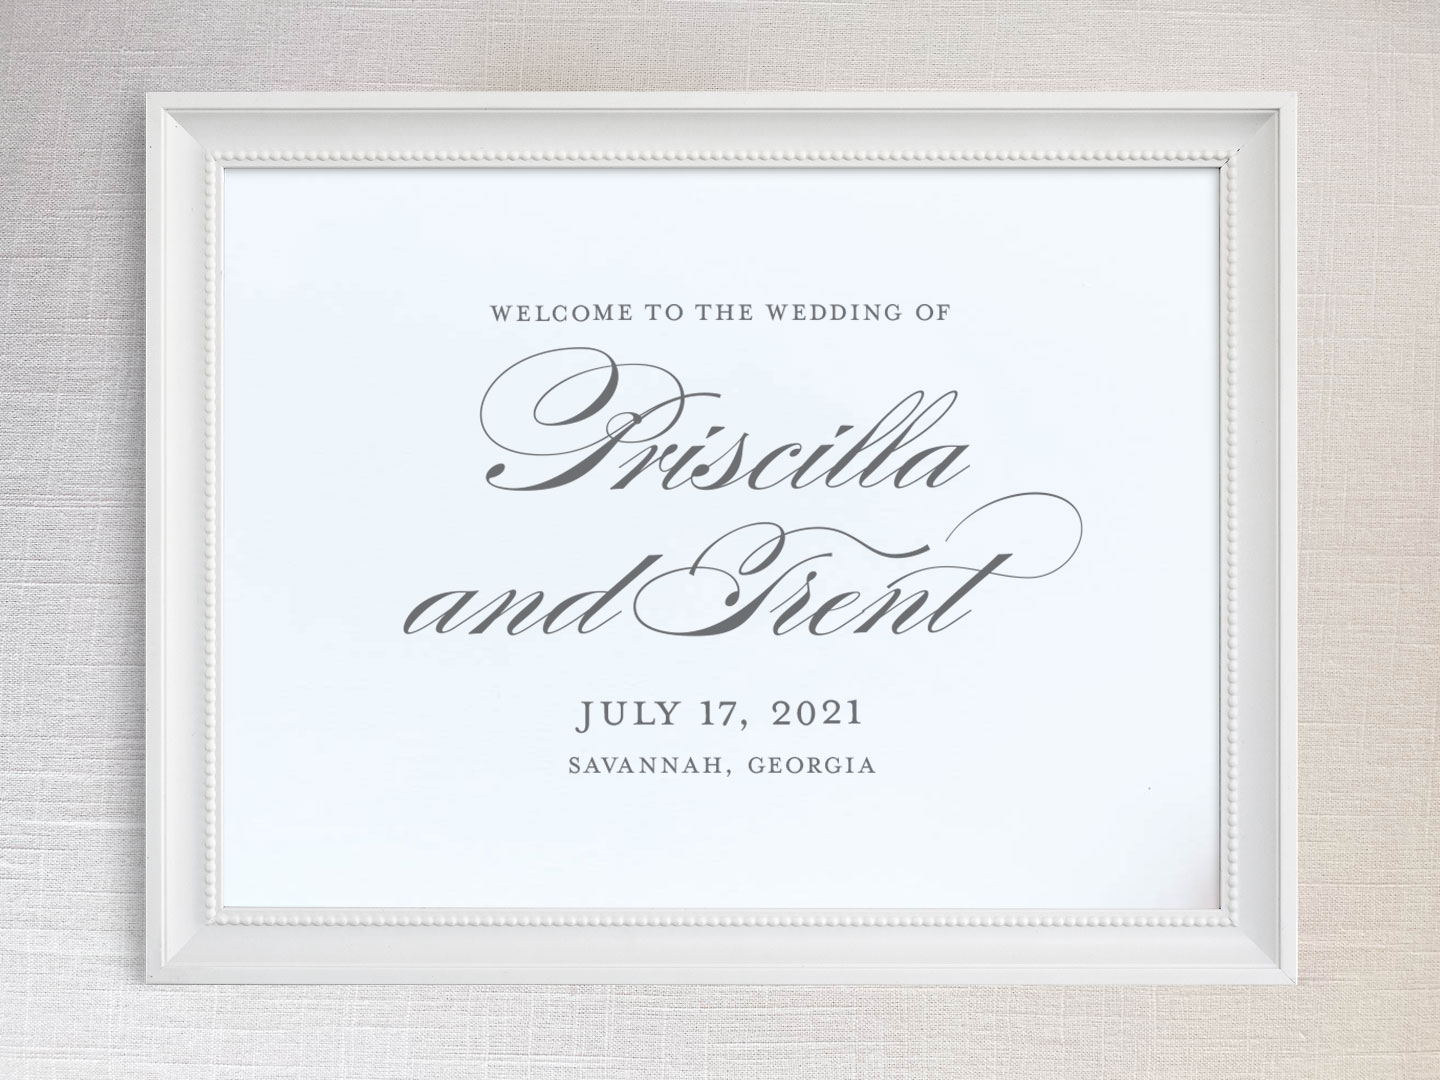 Wedding welcome sign with formal script names.